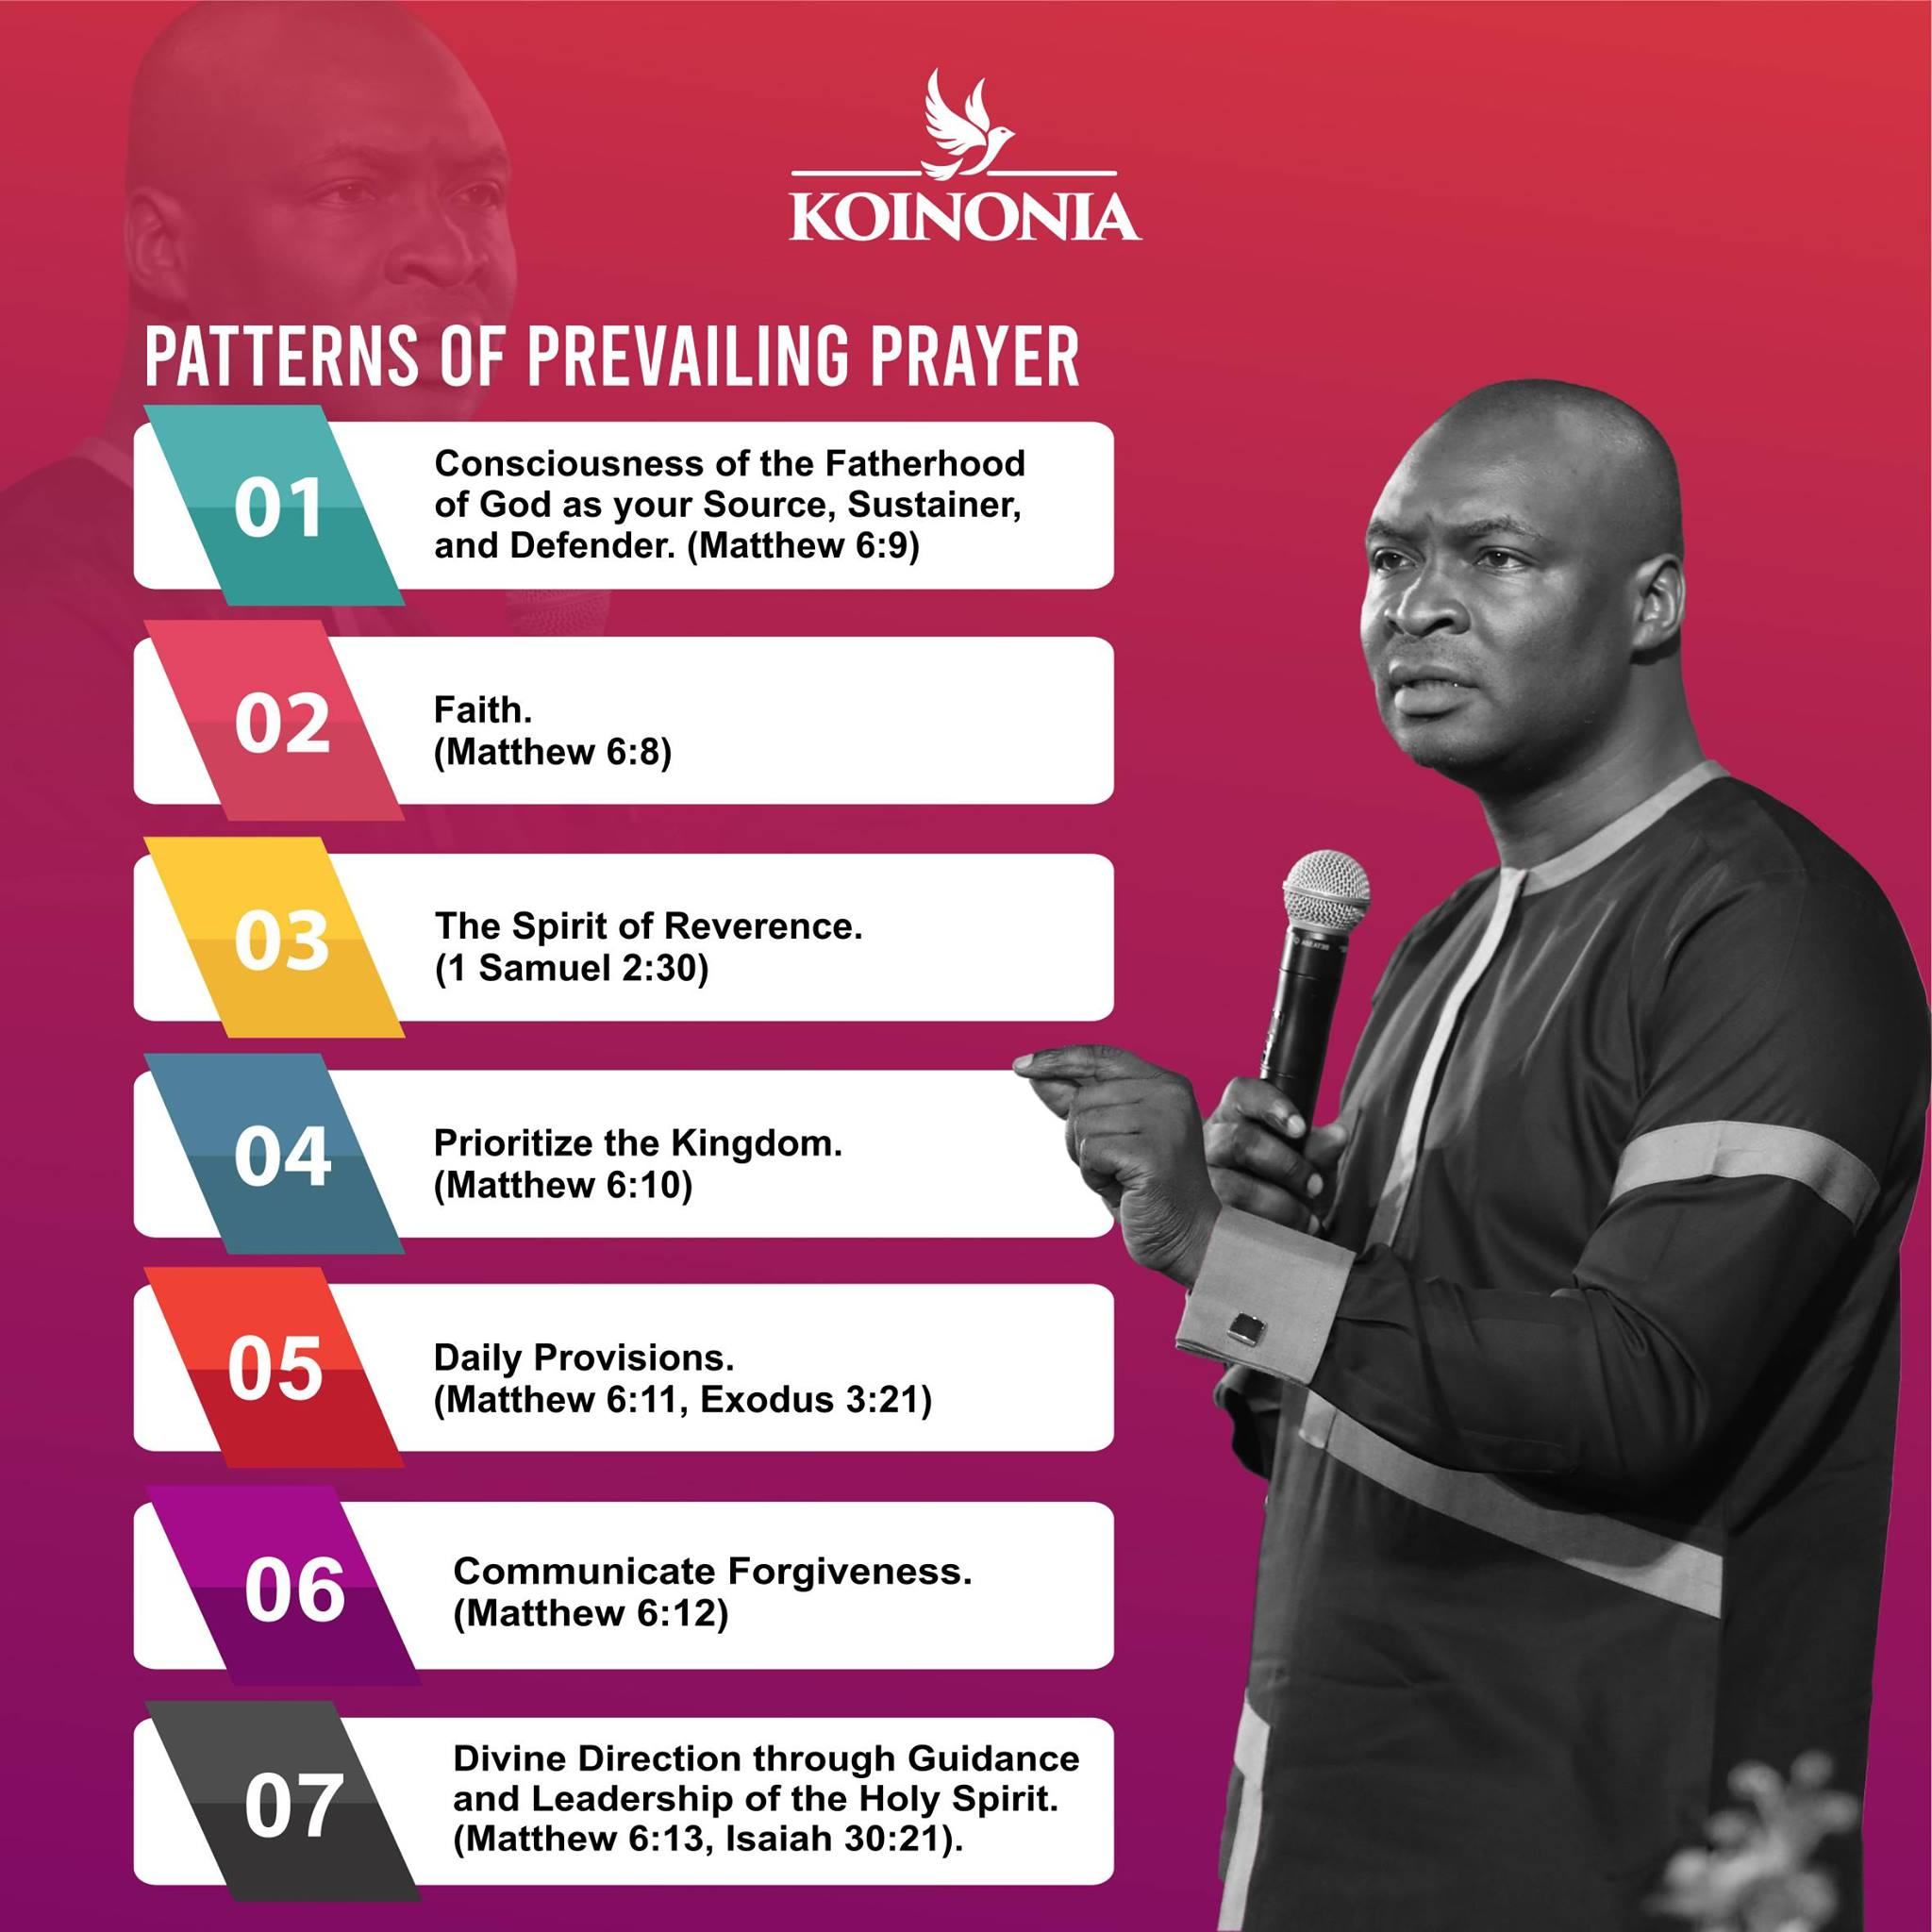 The Mystery of Prevailing Prayers Part Two Koinonia Abuja Sermon with Apostle Joshua Selman Nimmak